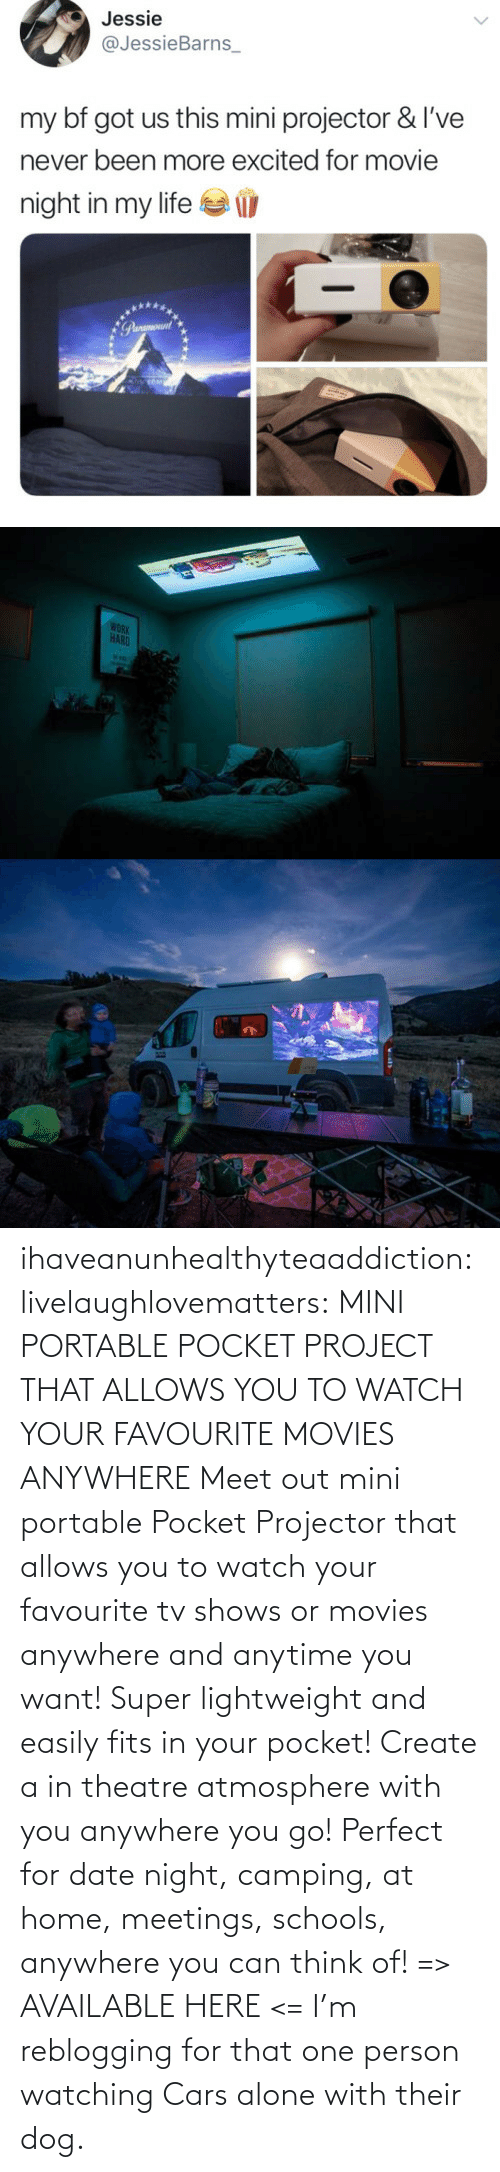 Being Alone, Cars, and Movies: ihaveanunhealthyteaaddiction:  livelaughlovematters: MINI PORTABLE POCKET PROJECT THAT ALLOWS YOU TO WATCH YOUR FAVOURITE MOVIES ANYWHERE Meet out mini portable Pocket Projector that allows you to watch your favourite tv shows or movies anywhere and anytime you want! Super lightweight and easily fits in your pocket! Create a in theatre atmosphere with you anywhere you go! Perfect for date night, camping, at home, meetings, schools, anywhere you can think of! => AVAILABLE HERE <=    I'm reblogging for that one person watching Cars alone with their dog.